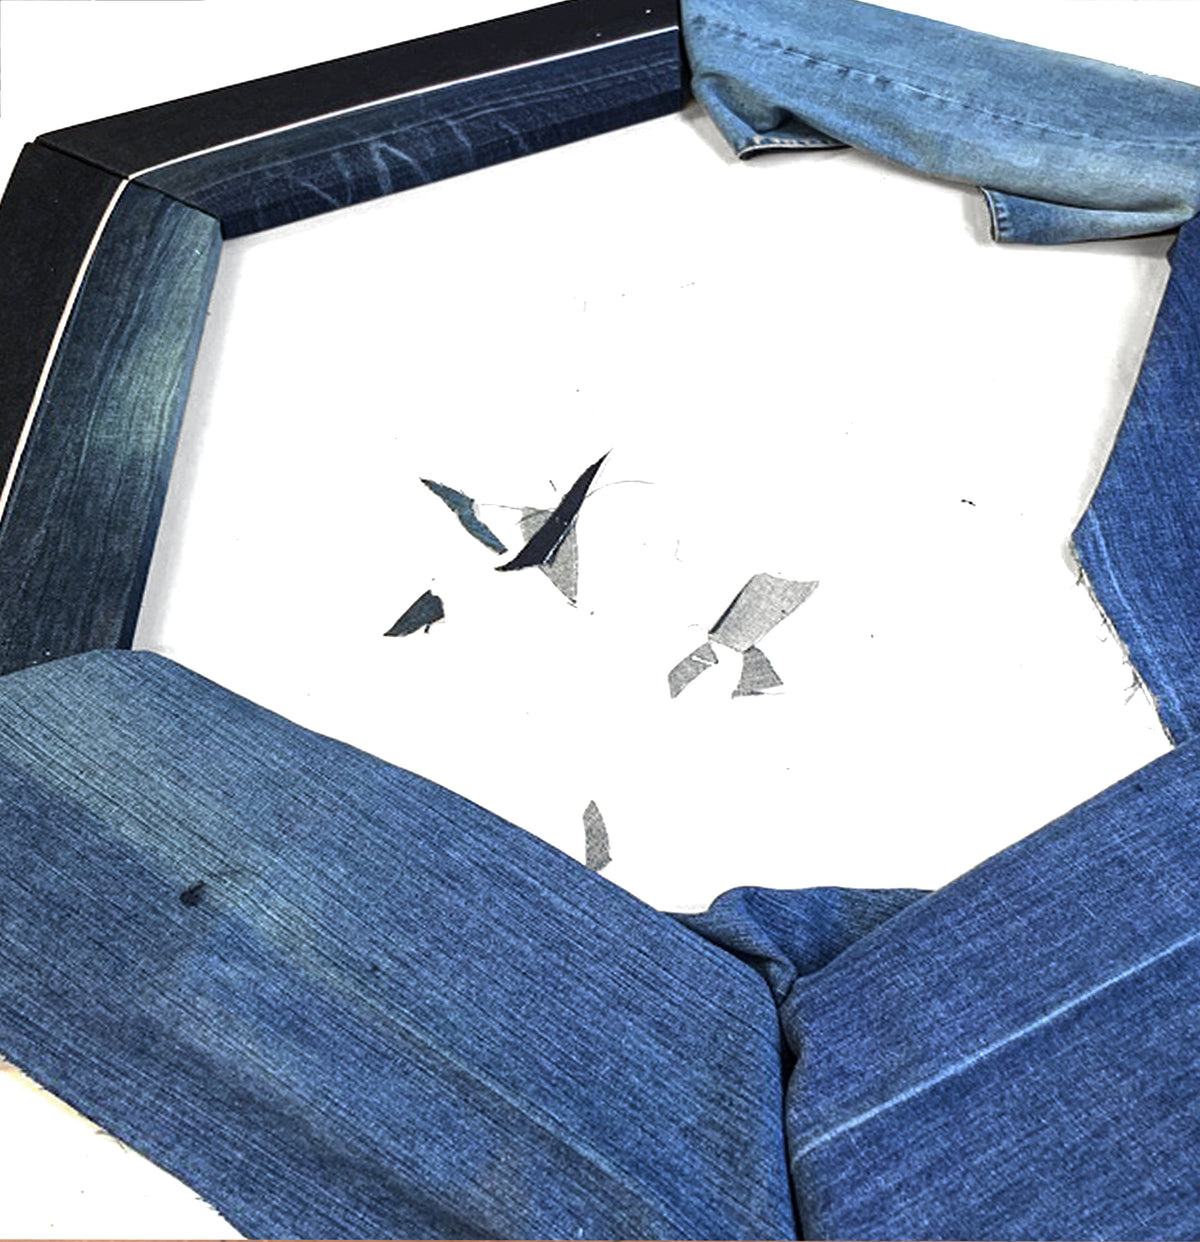 Making process of denim framed hexagonal mirror